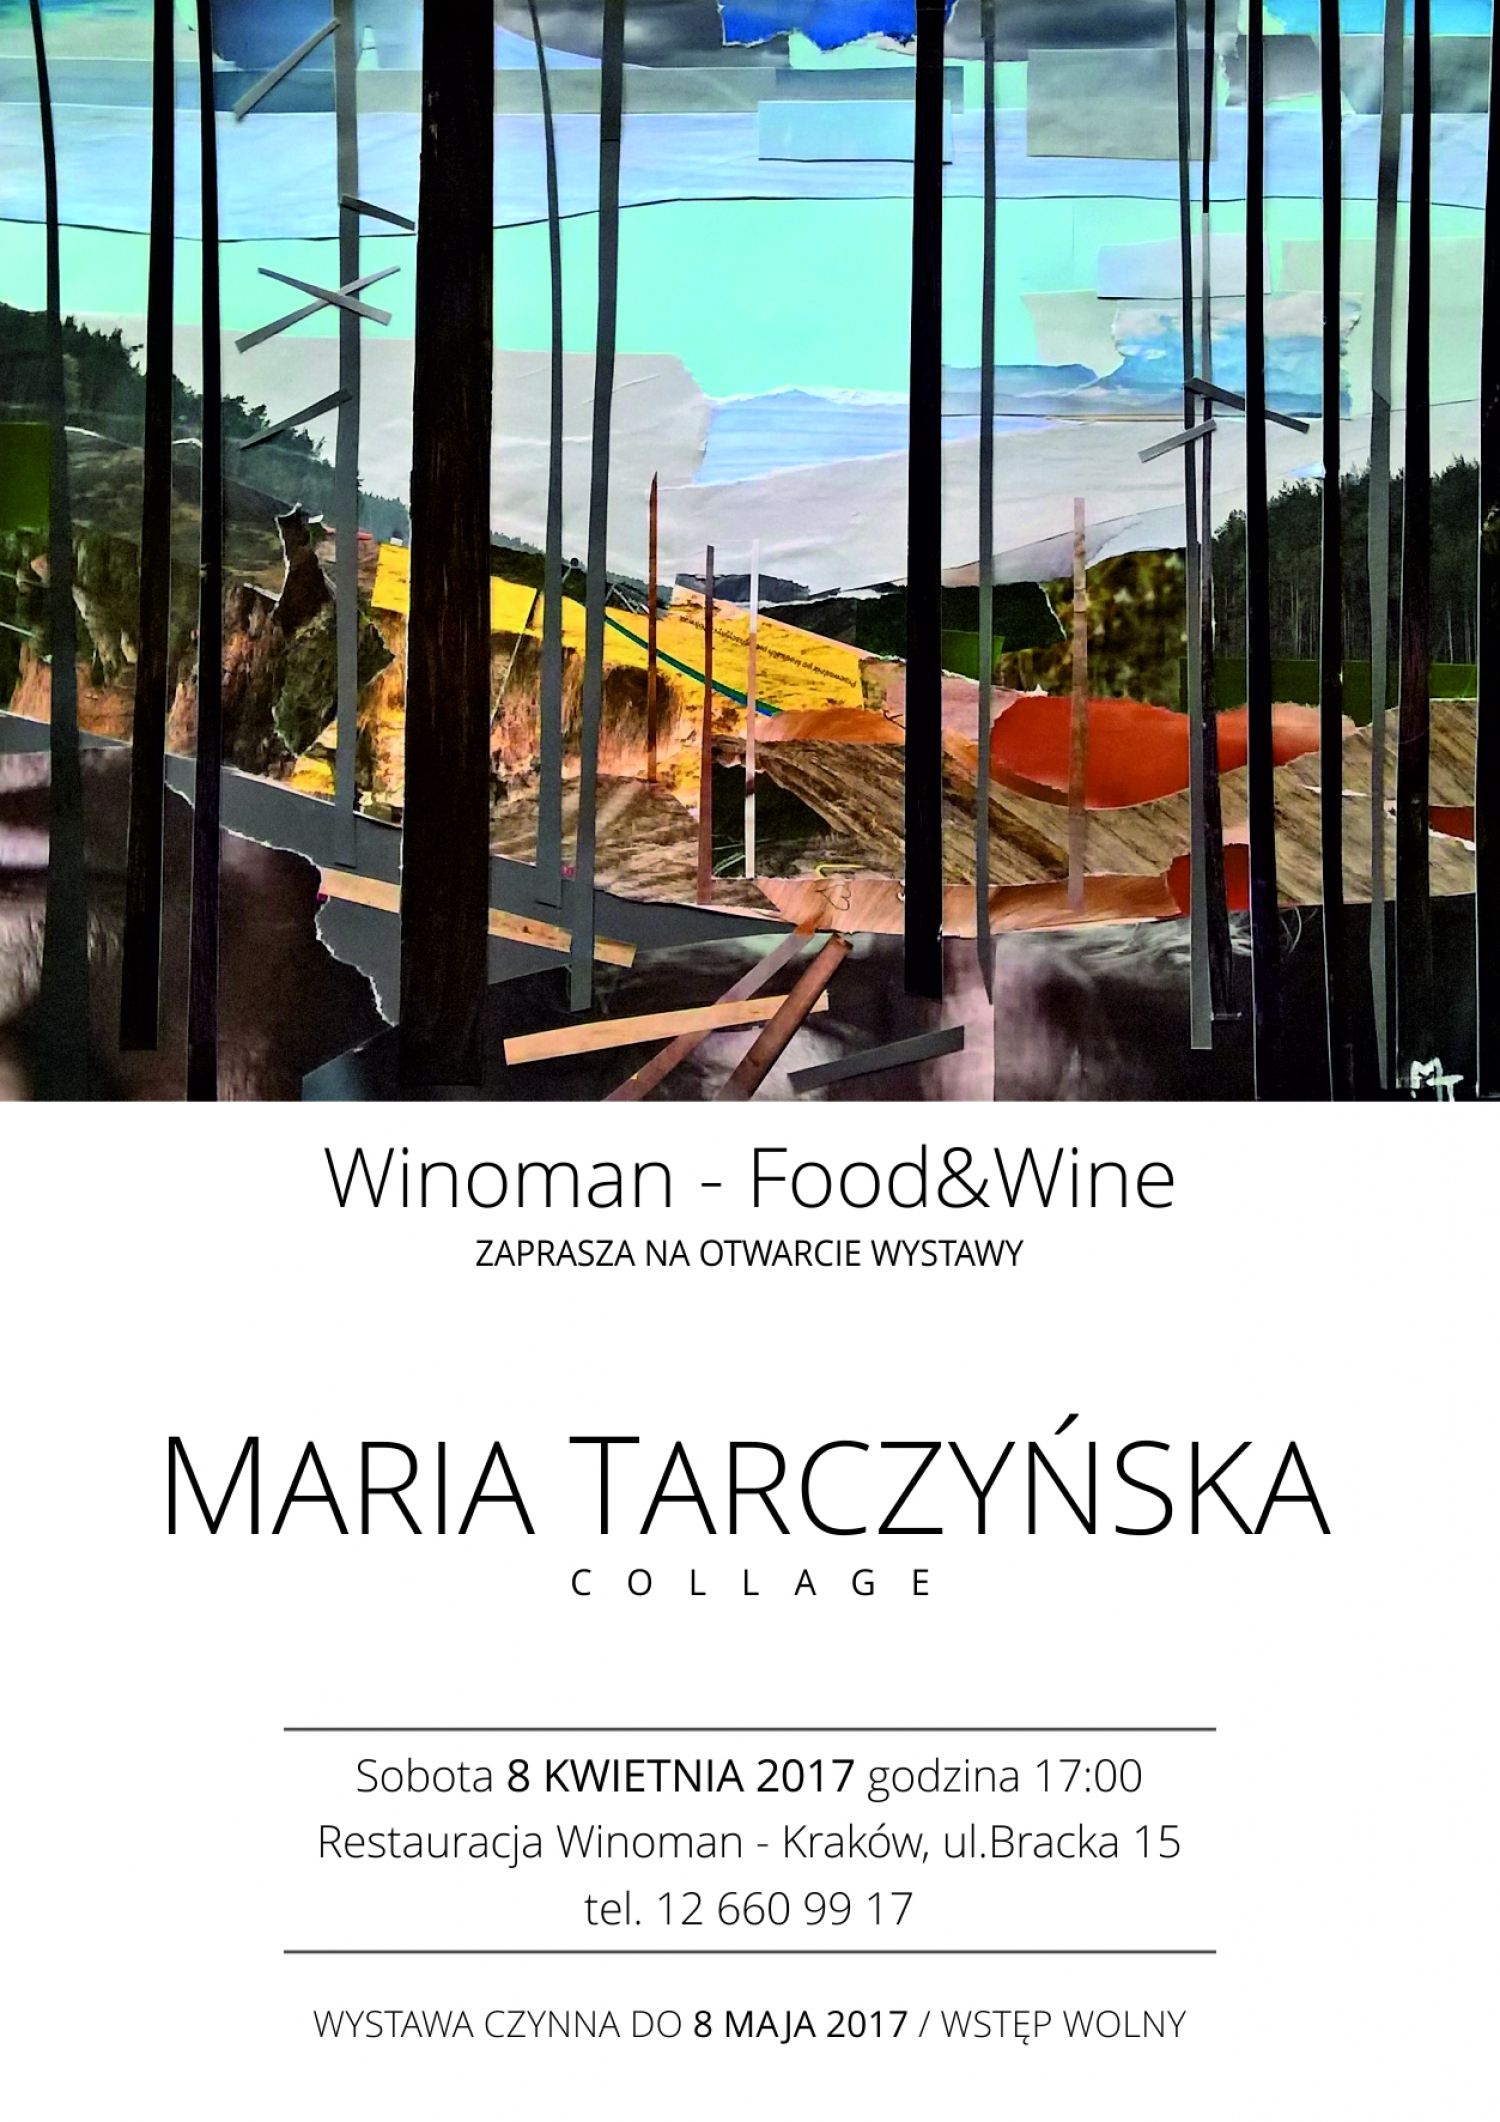 """Collage"" - opening of the exhibition of Maria Tarczyńska works"